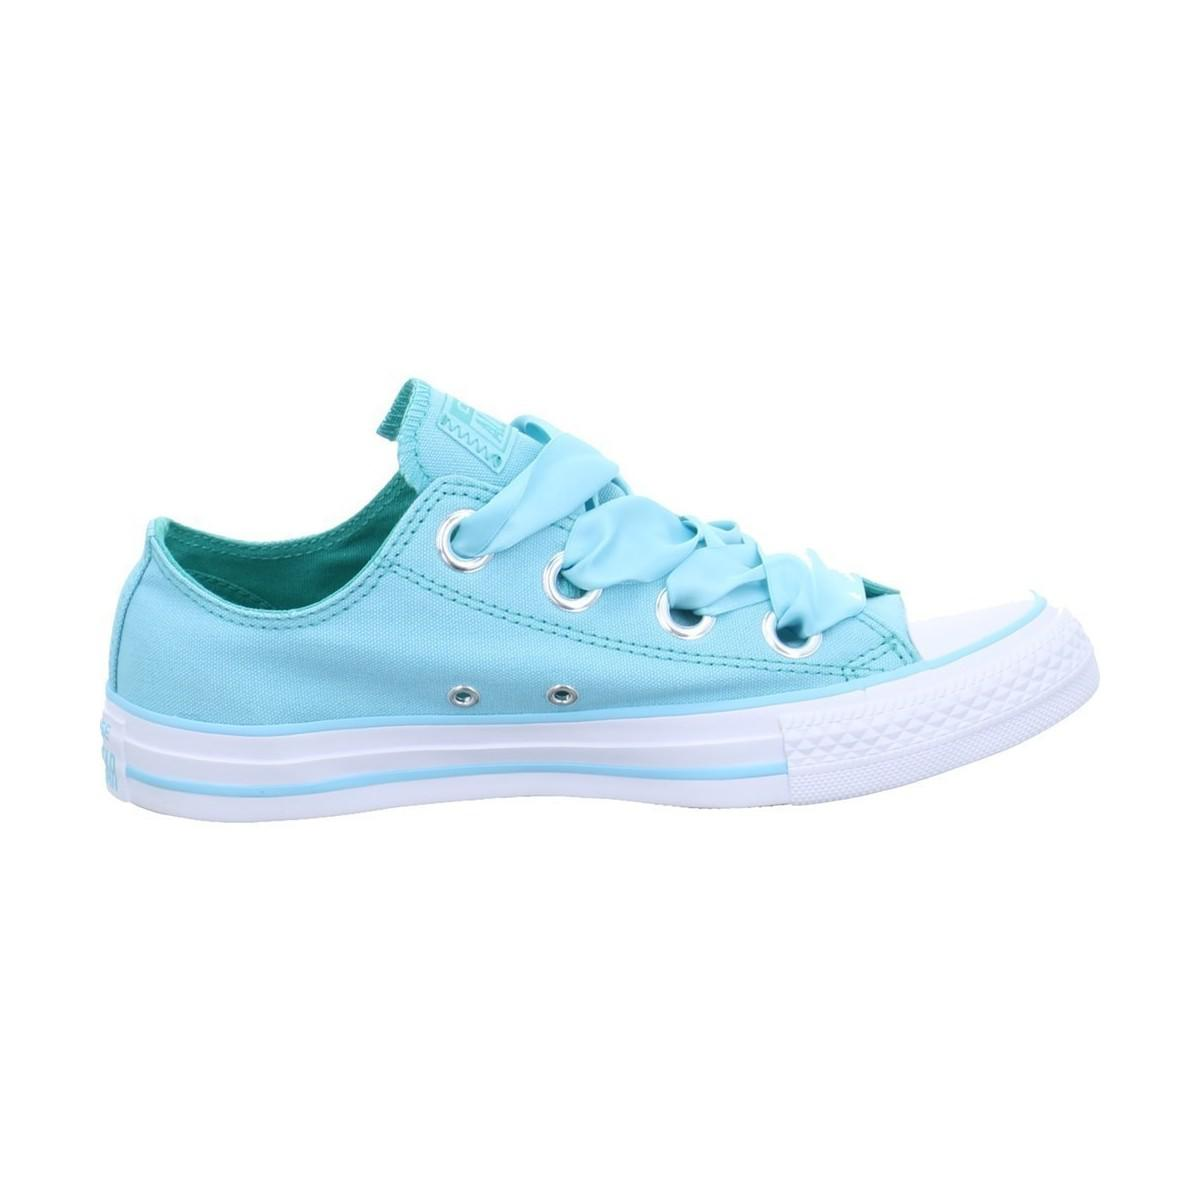 Converse Chuck Taylor As Big Men's Shoes (trainers) In Blue for Men